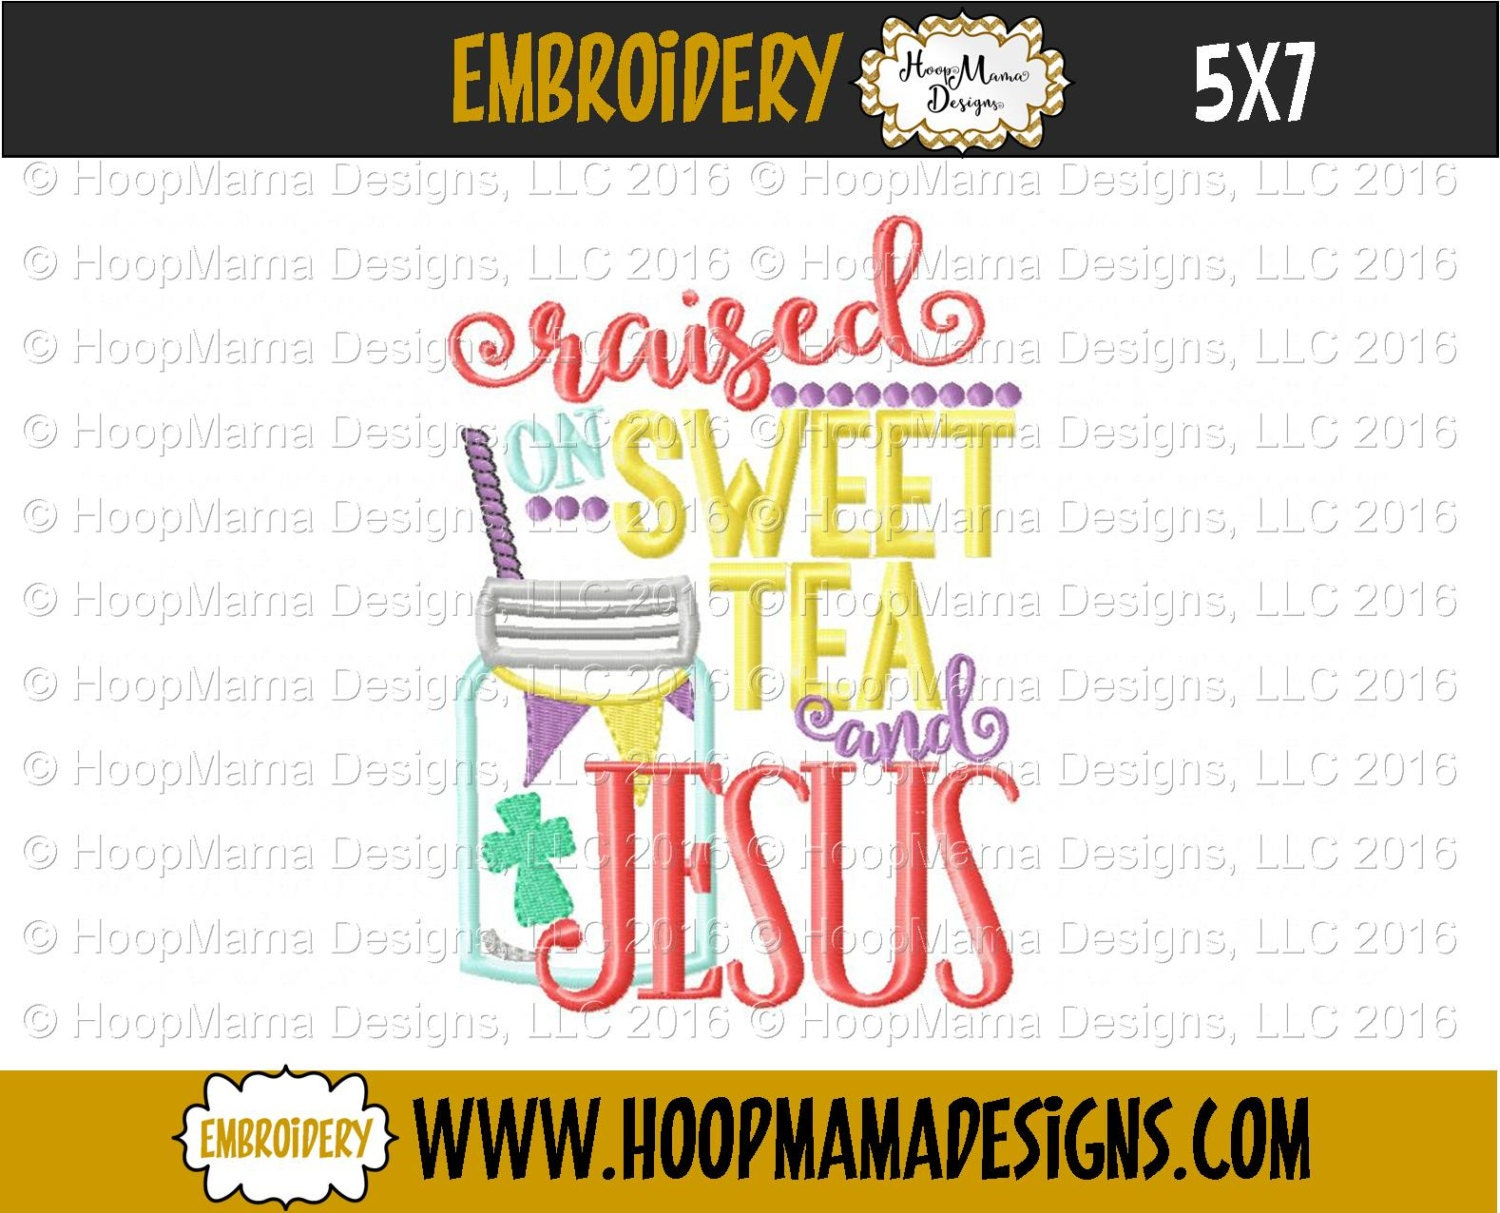 Embroidery designs for toilet paper - Raised On Sweet Tea And Jesus 4x4 5x7 6x10 Machine Embroidery Design Pes Jef Dst Hus Vip Vp3 Xxx Exp